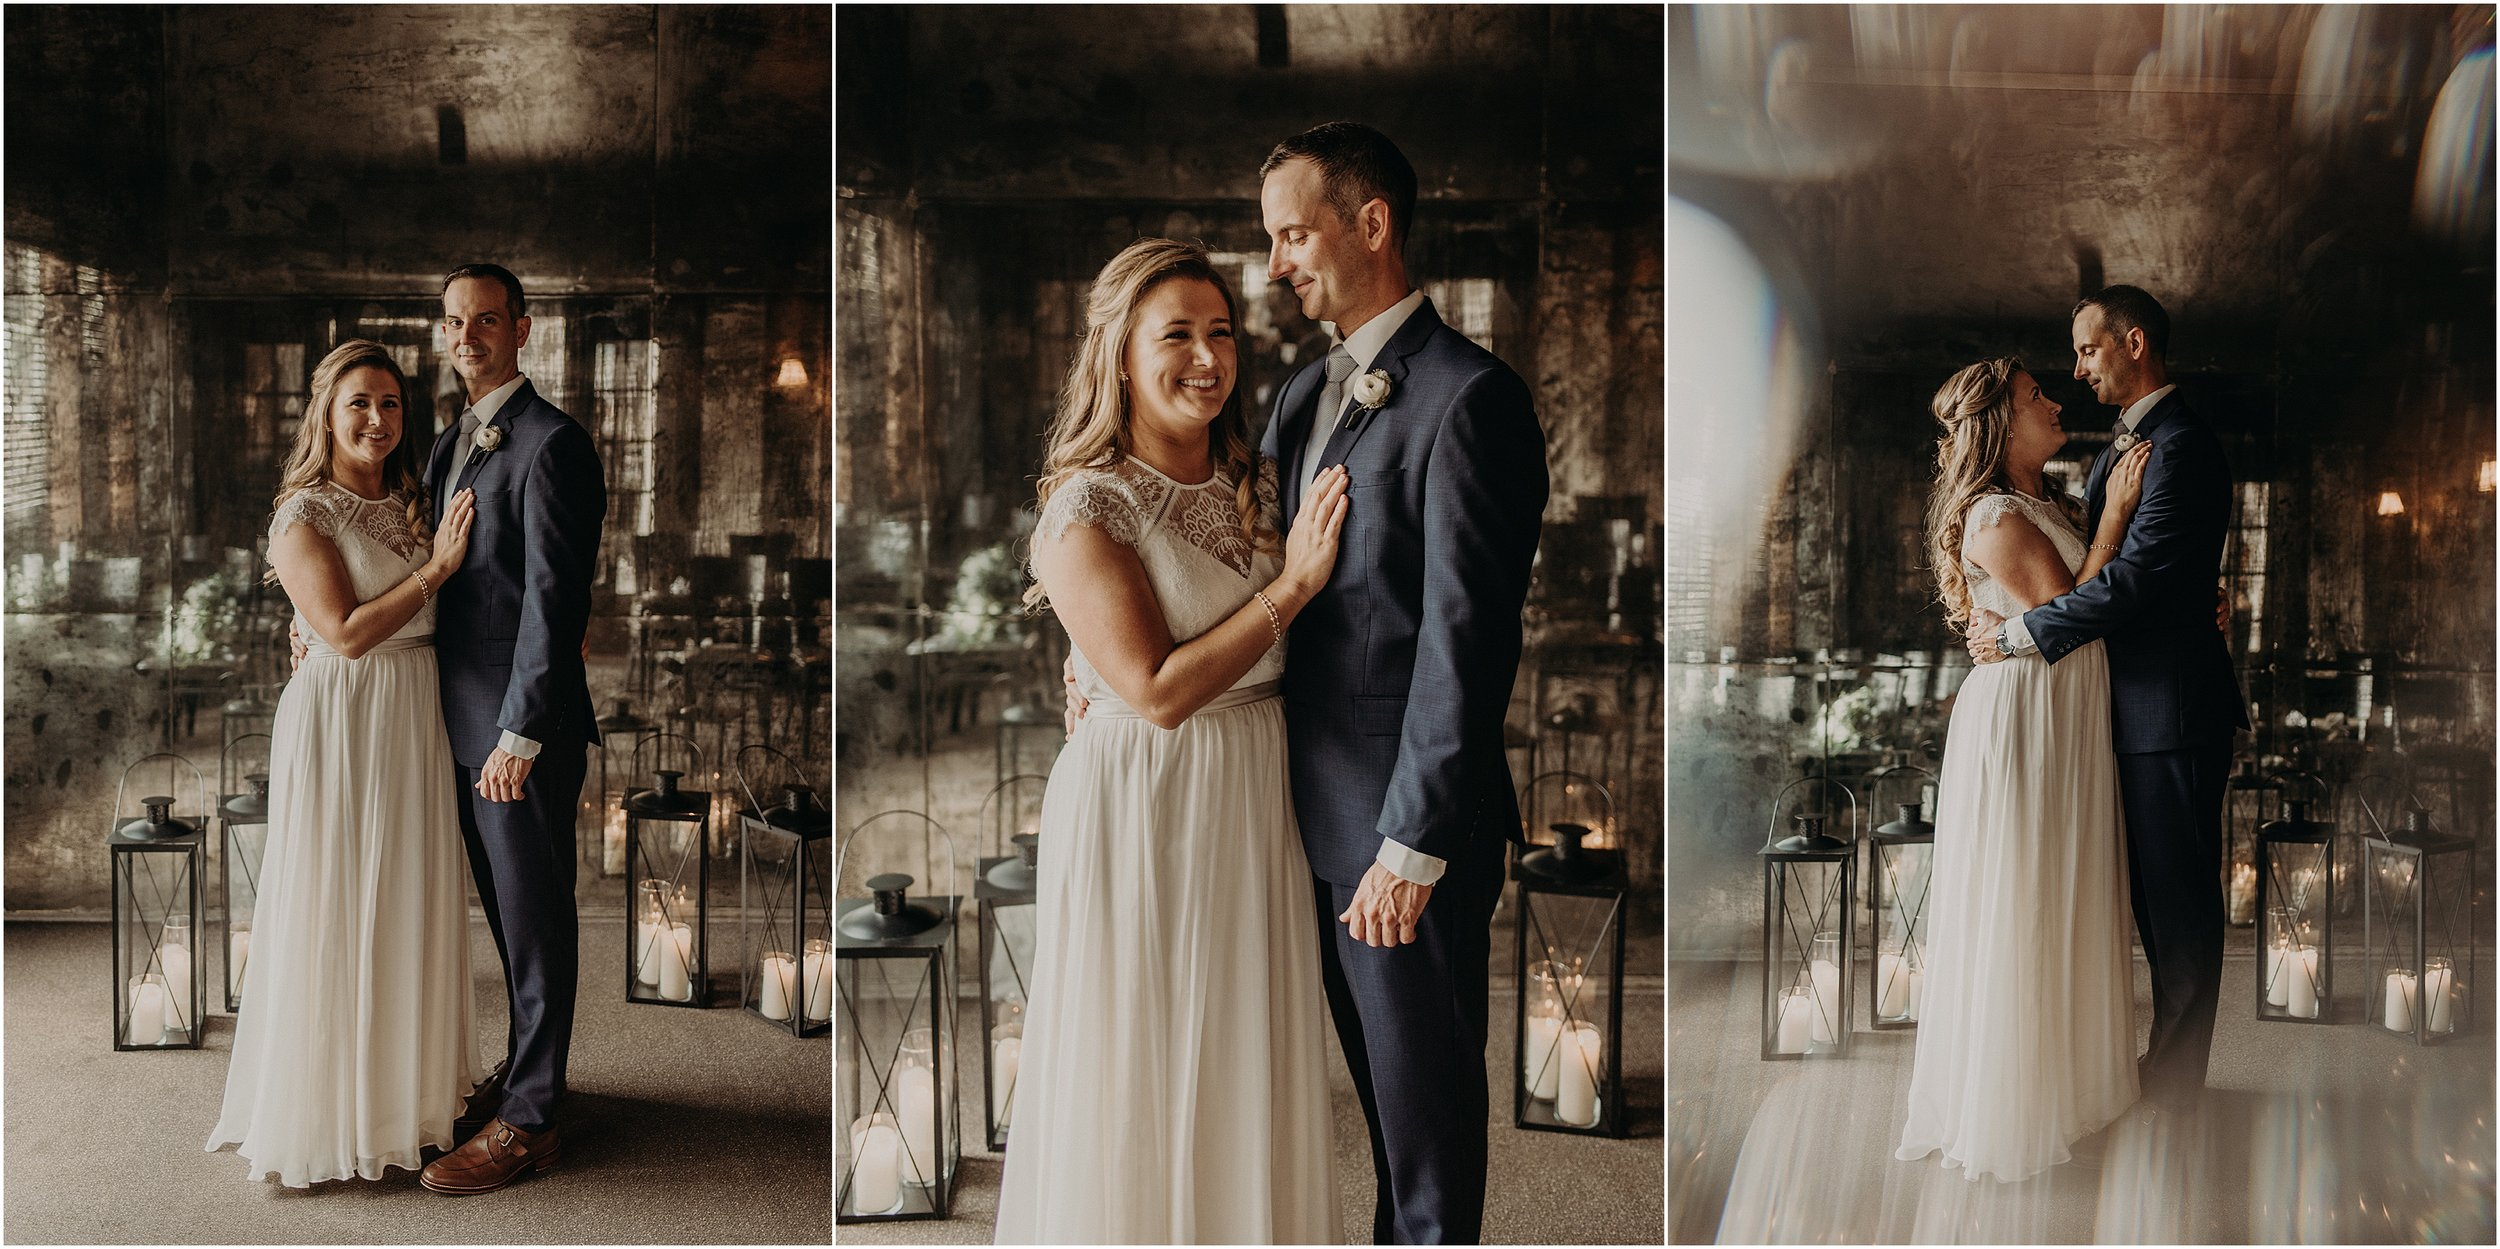 Bride and groom elope in private party room with reflective walls and ceiling